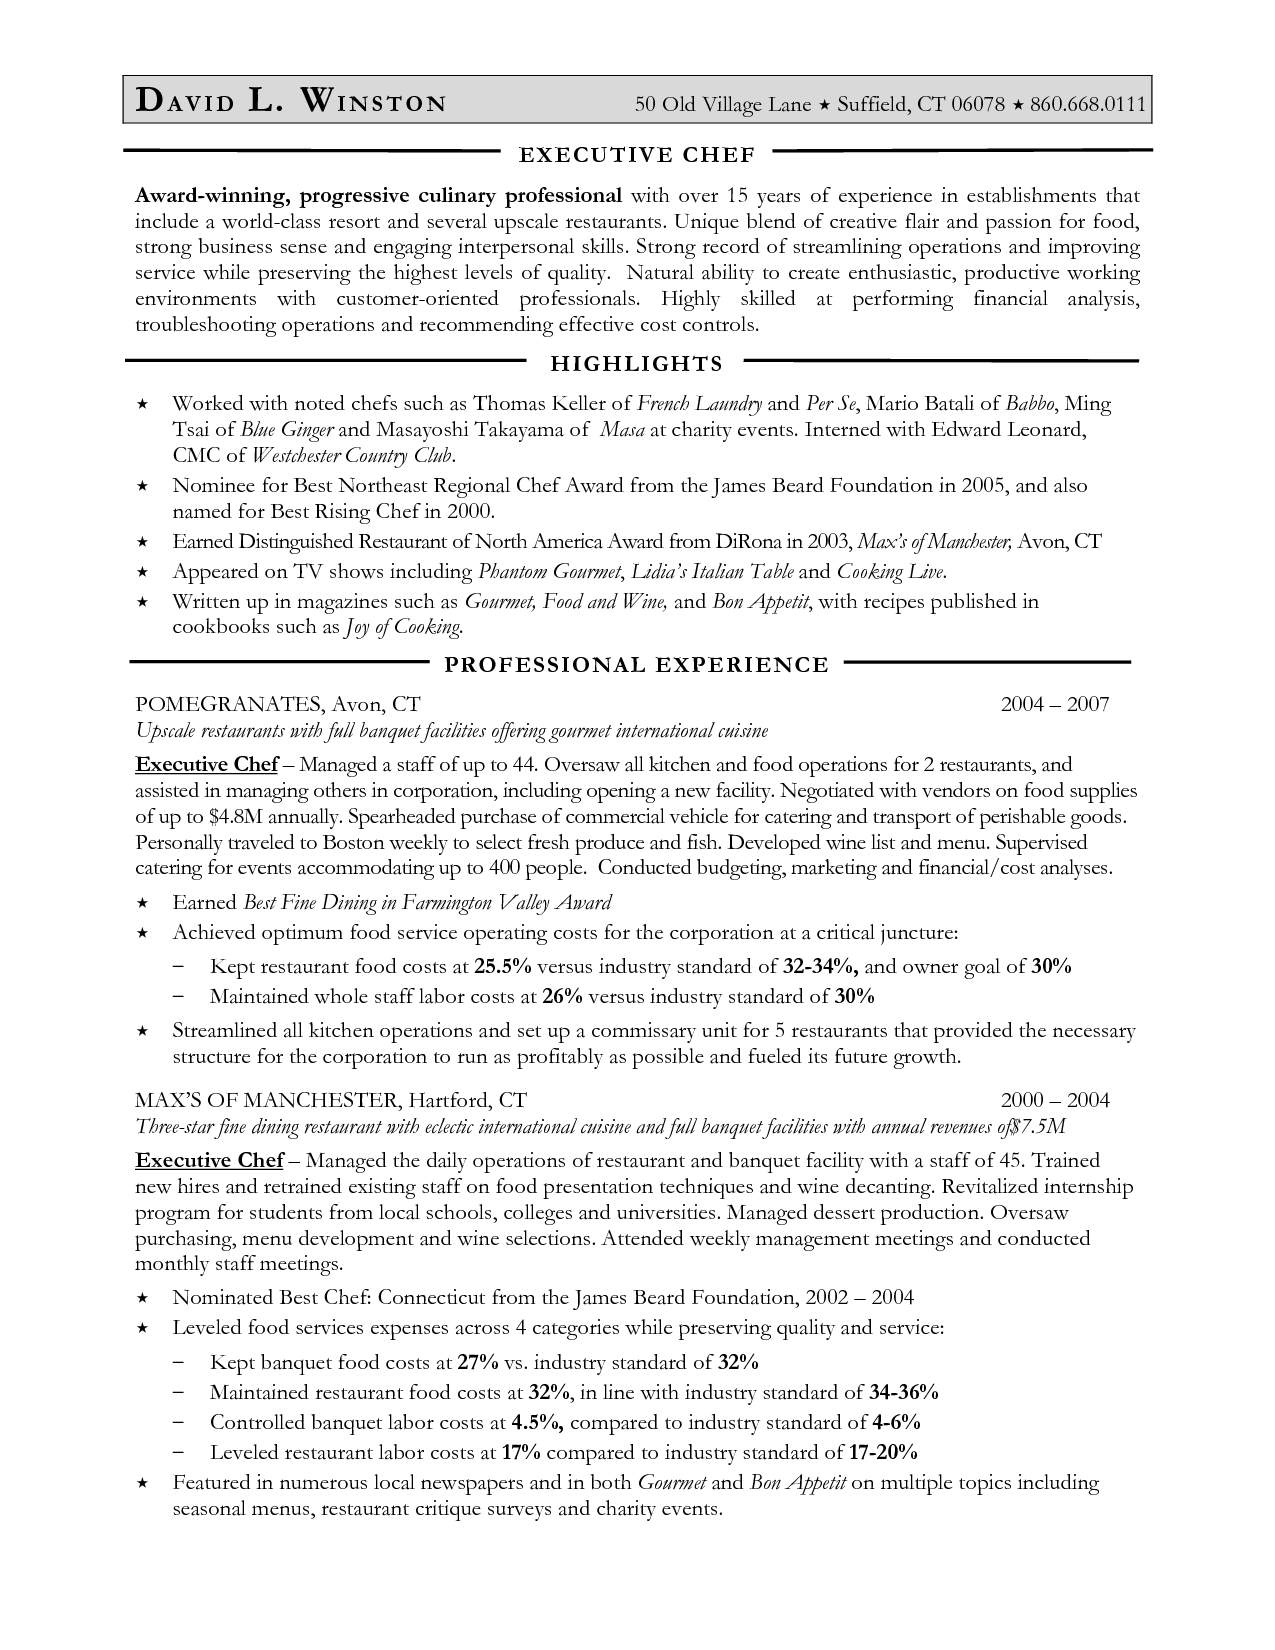 Chef Resume Adorable Pastry Chef Resume Samples  Httpwwwjobresumewebsitepastry